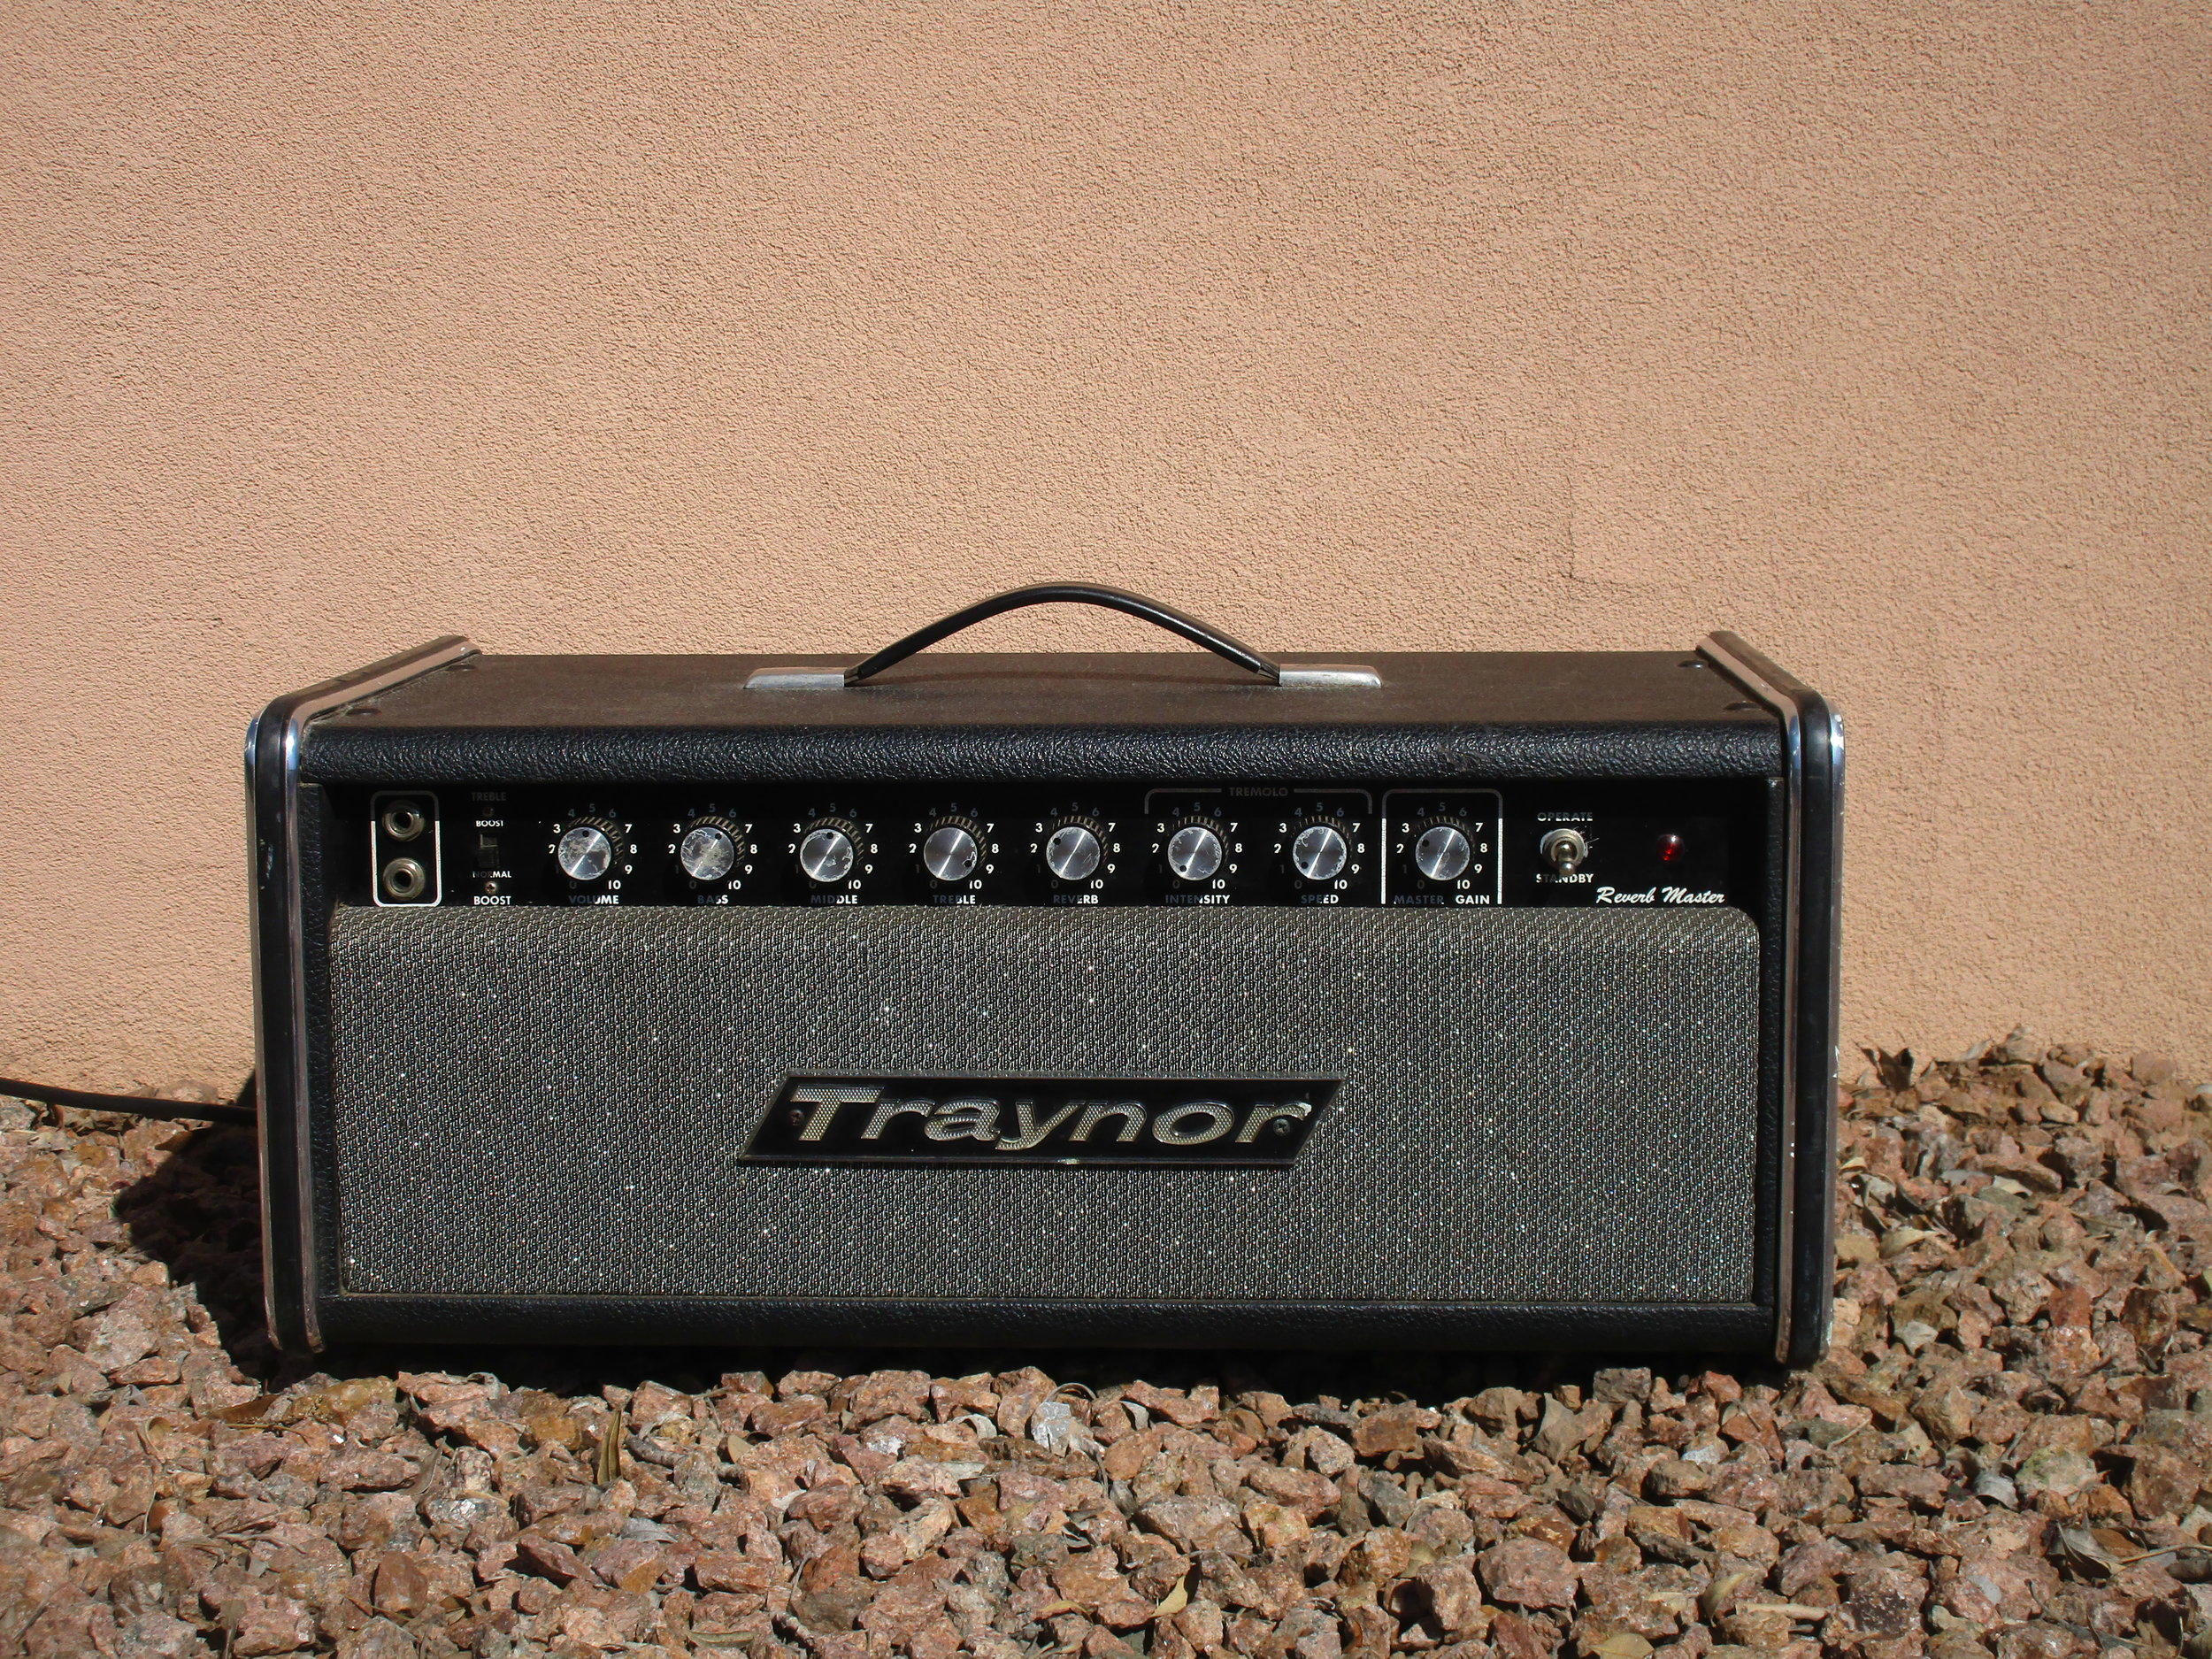 Here's a cool vintage Traynor Reverb Master. It's kind of Traynor's version of the Fender Blackface series. After new caps, some new tubes, and an adjustable bias system installed it sounds great!